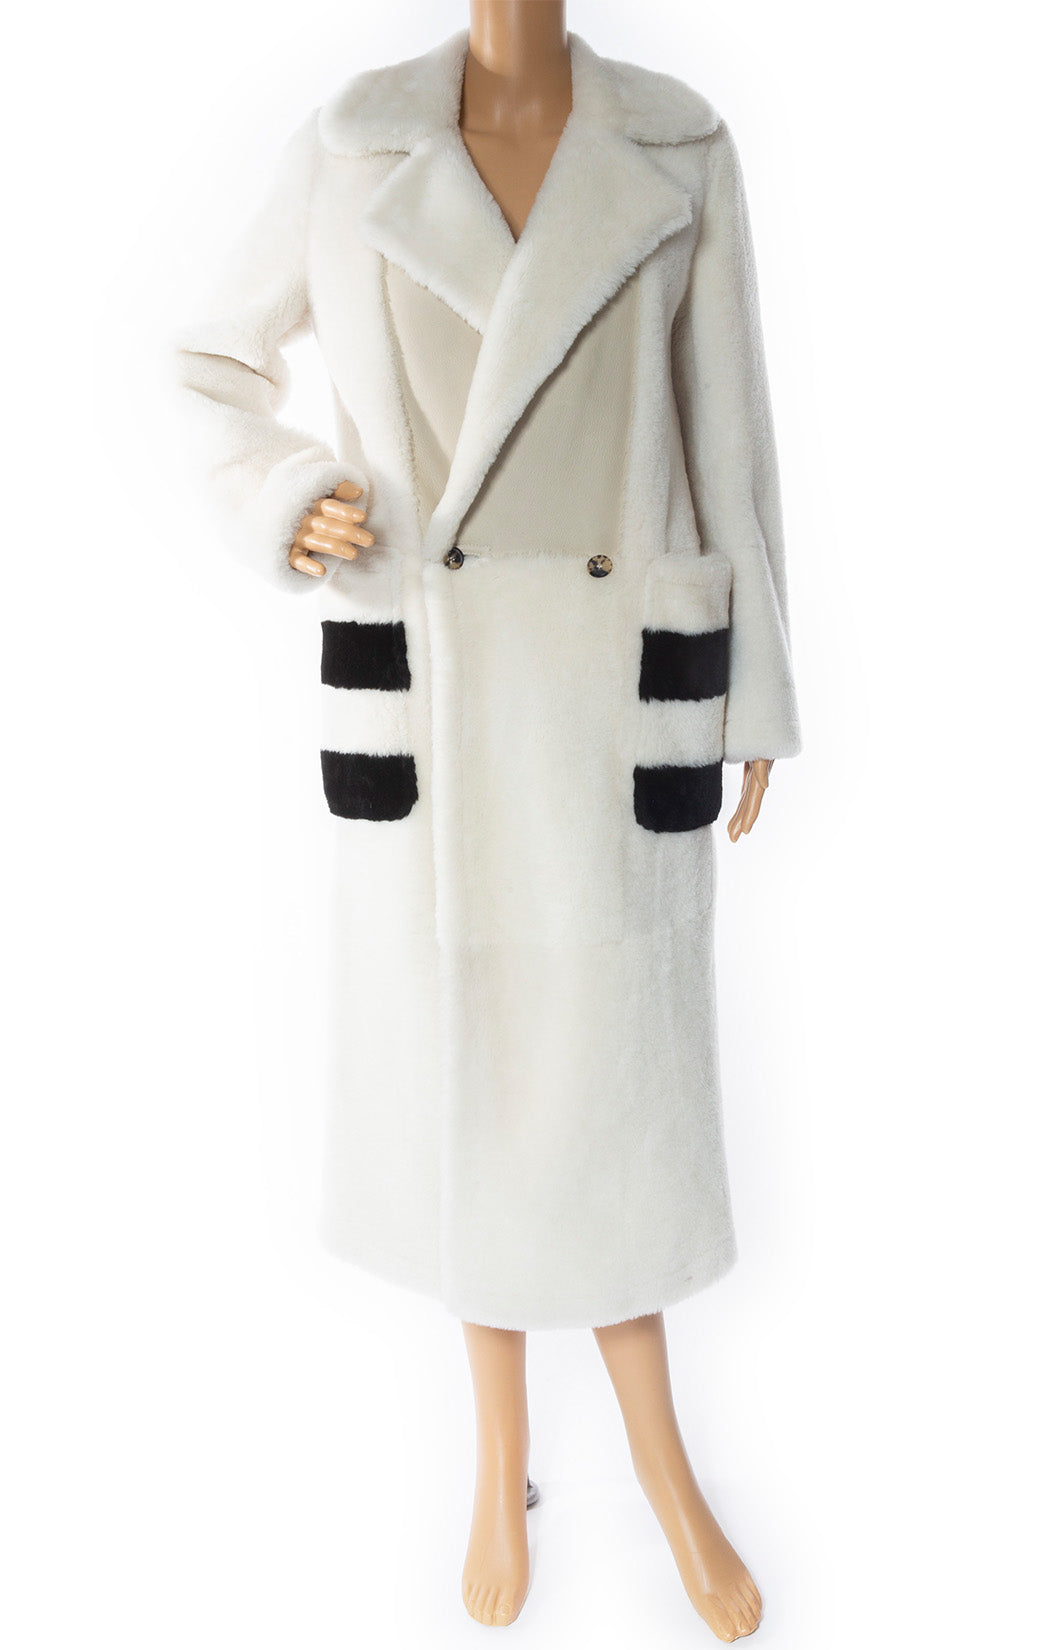 Front view of MAX MARA Fur Coat with Tags Size: US 2 (oversized)